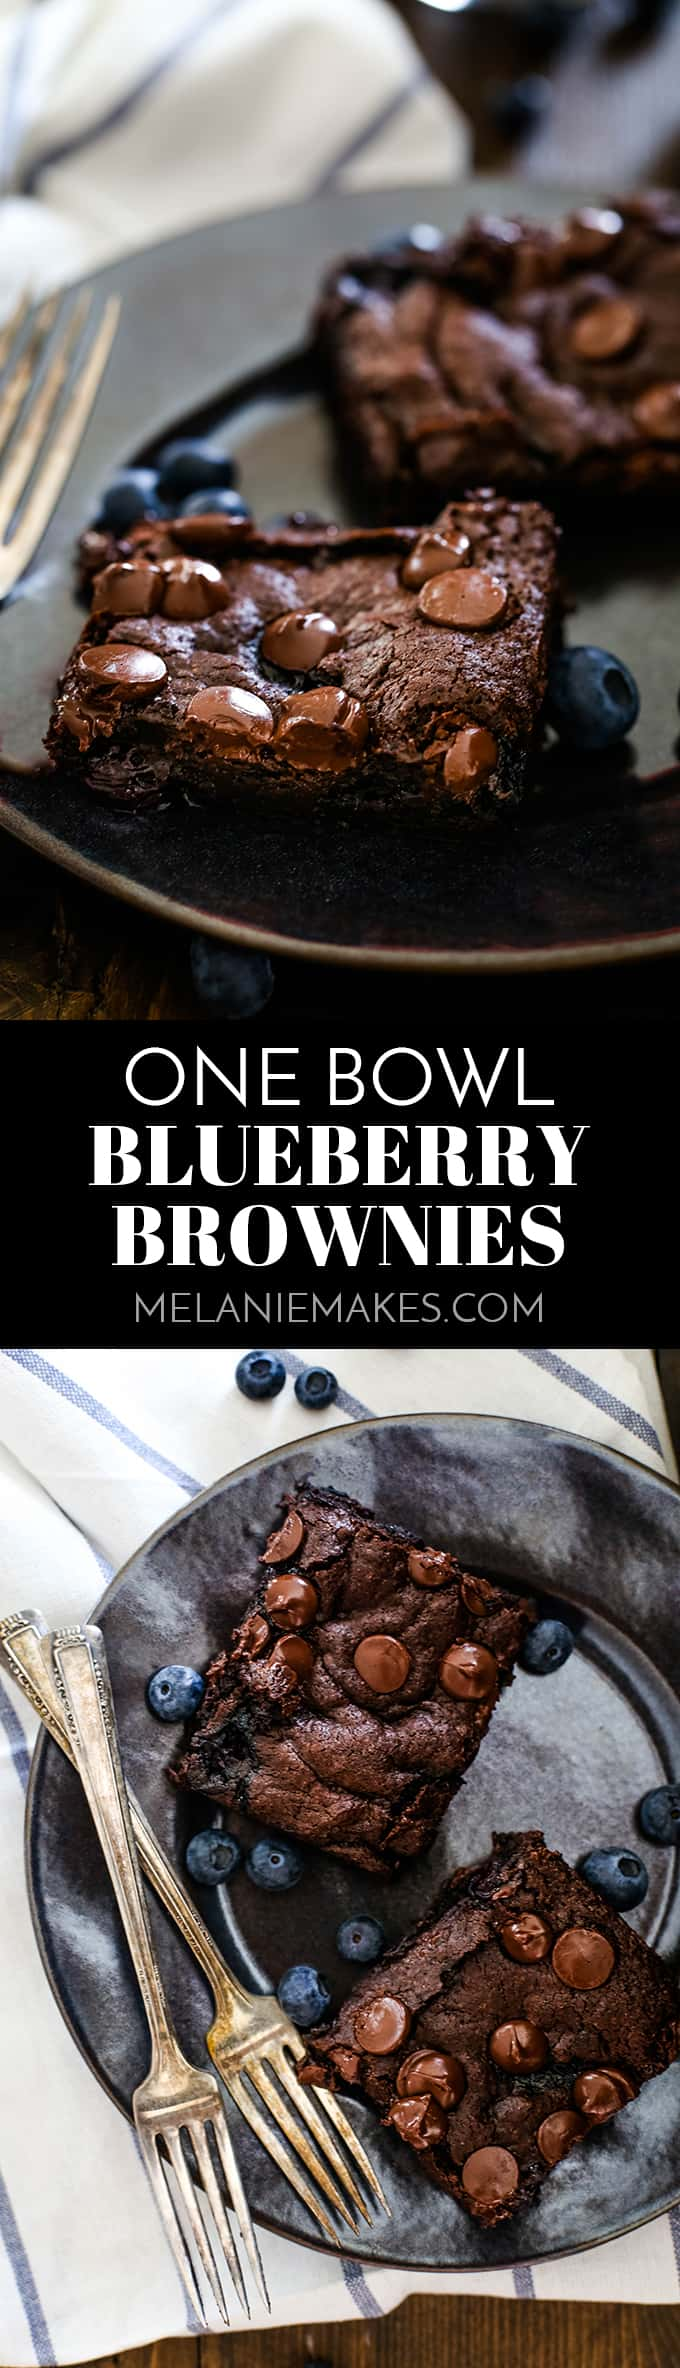 A pint of blueberries is the secret to creating the most moist and decadent One Bowl Blueberry Brownies. Even blueberry haters love these brownies! #blueberry #brownies #chocolate #desserts #easyrecipe #onebowl